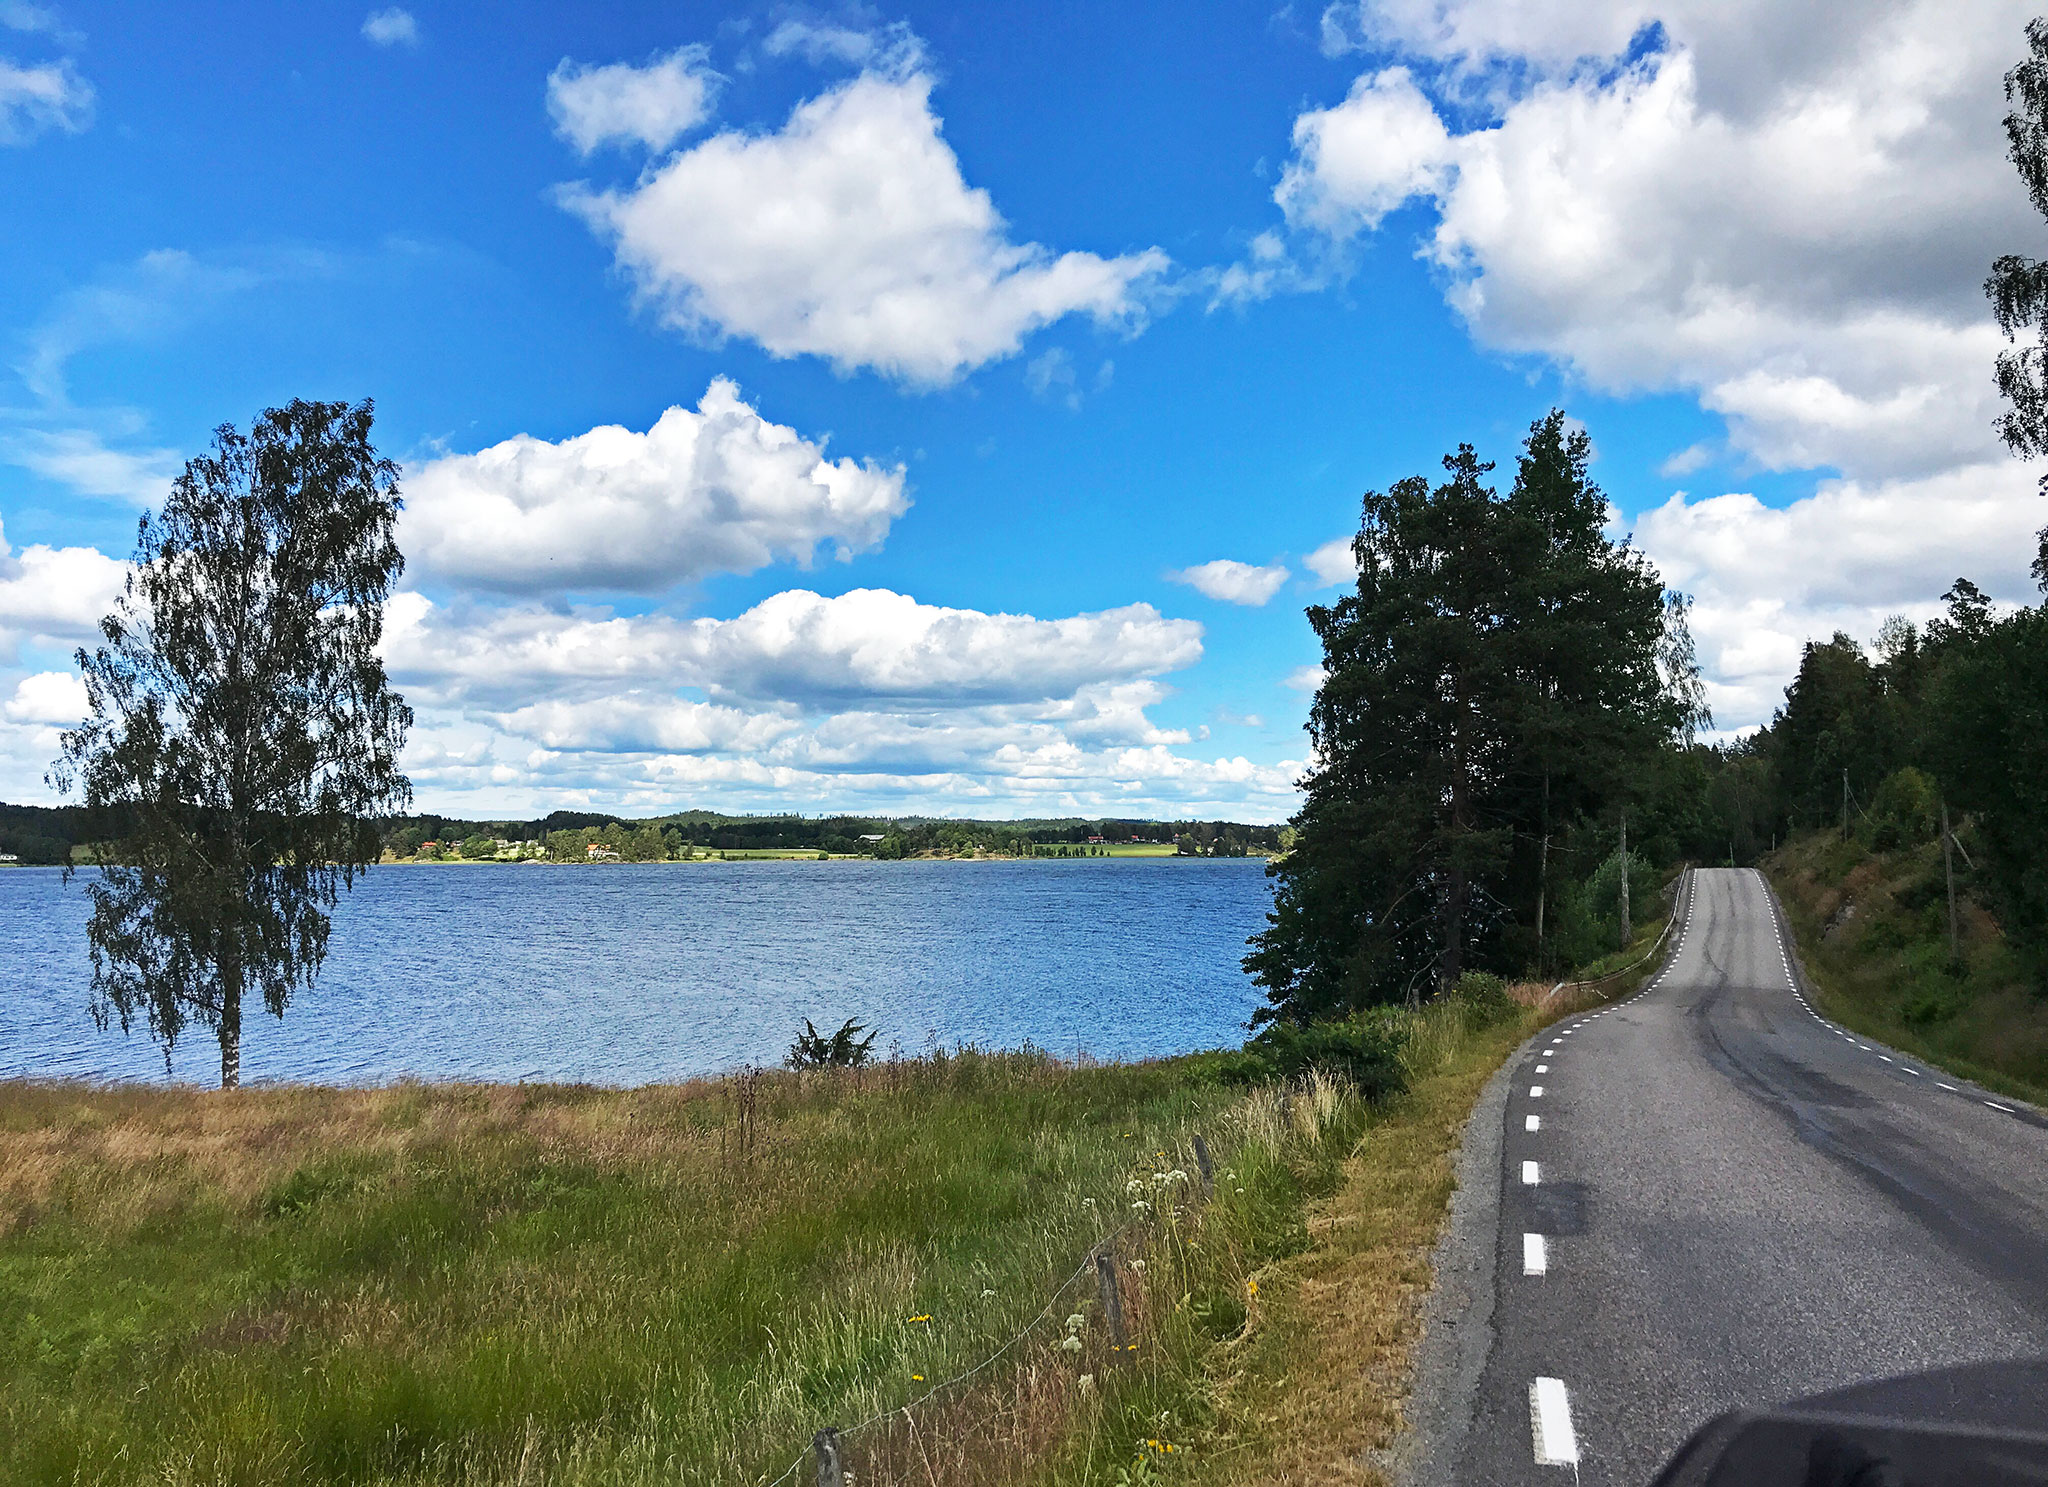 Return north: Countryside riding in Sweden